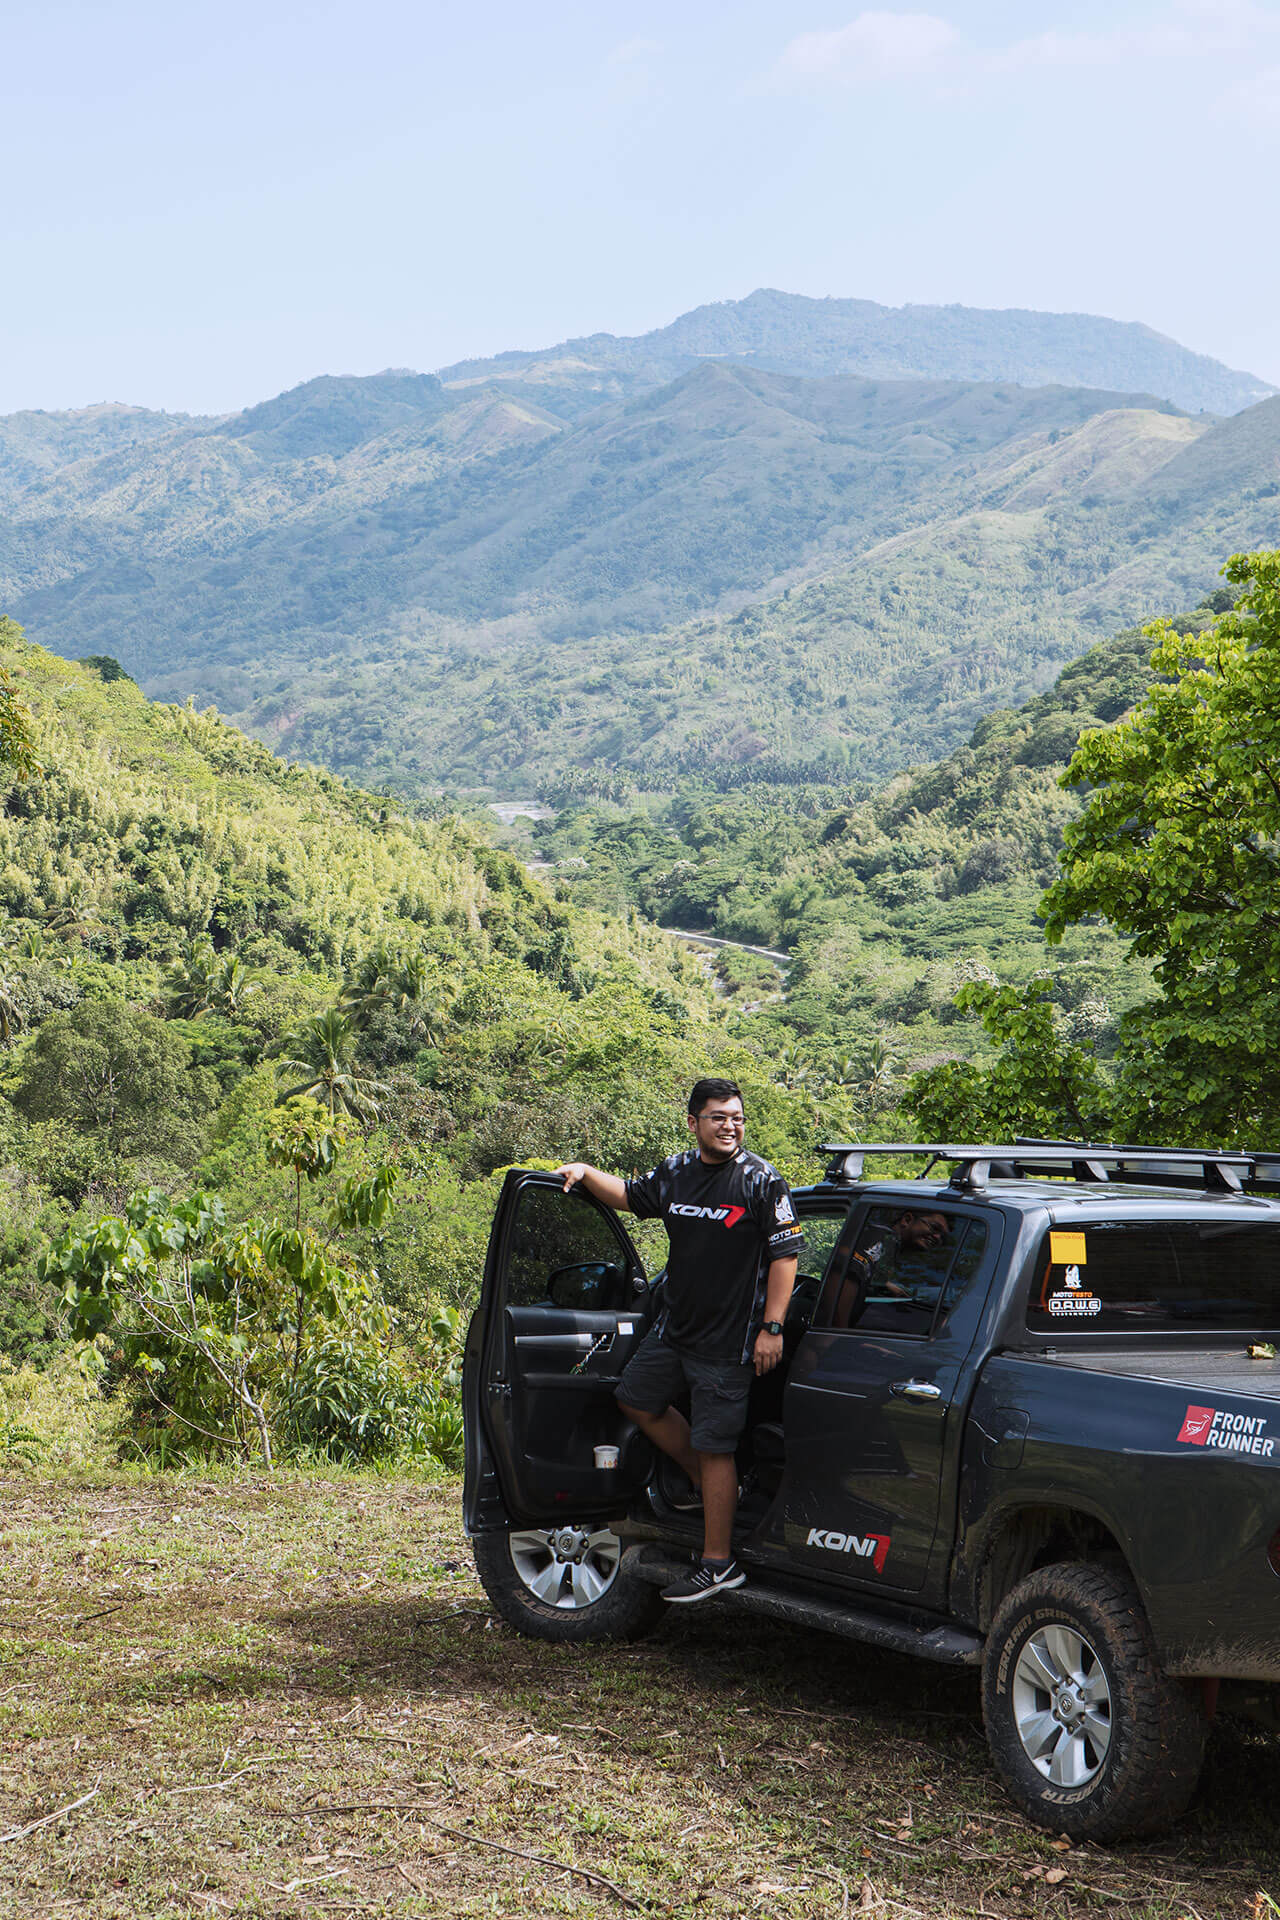 AcCamper on the Toyota Hilux overlooking Tanay mountain range